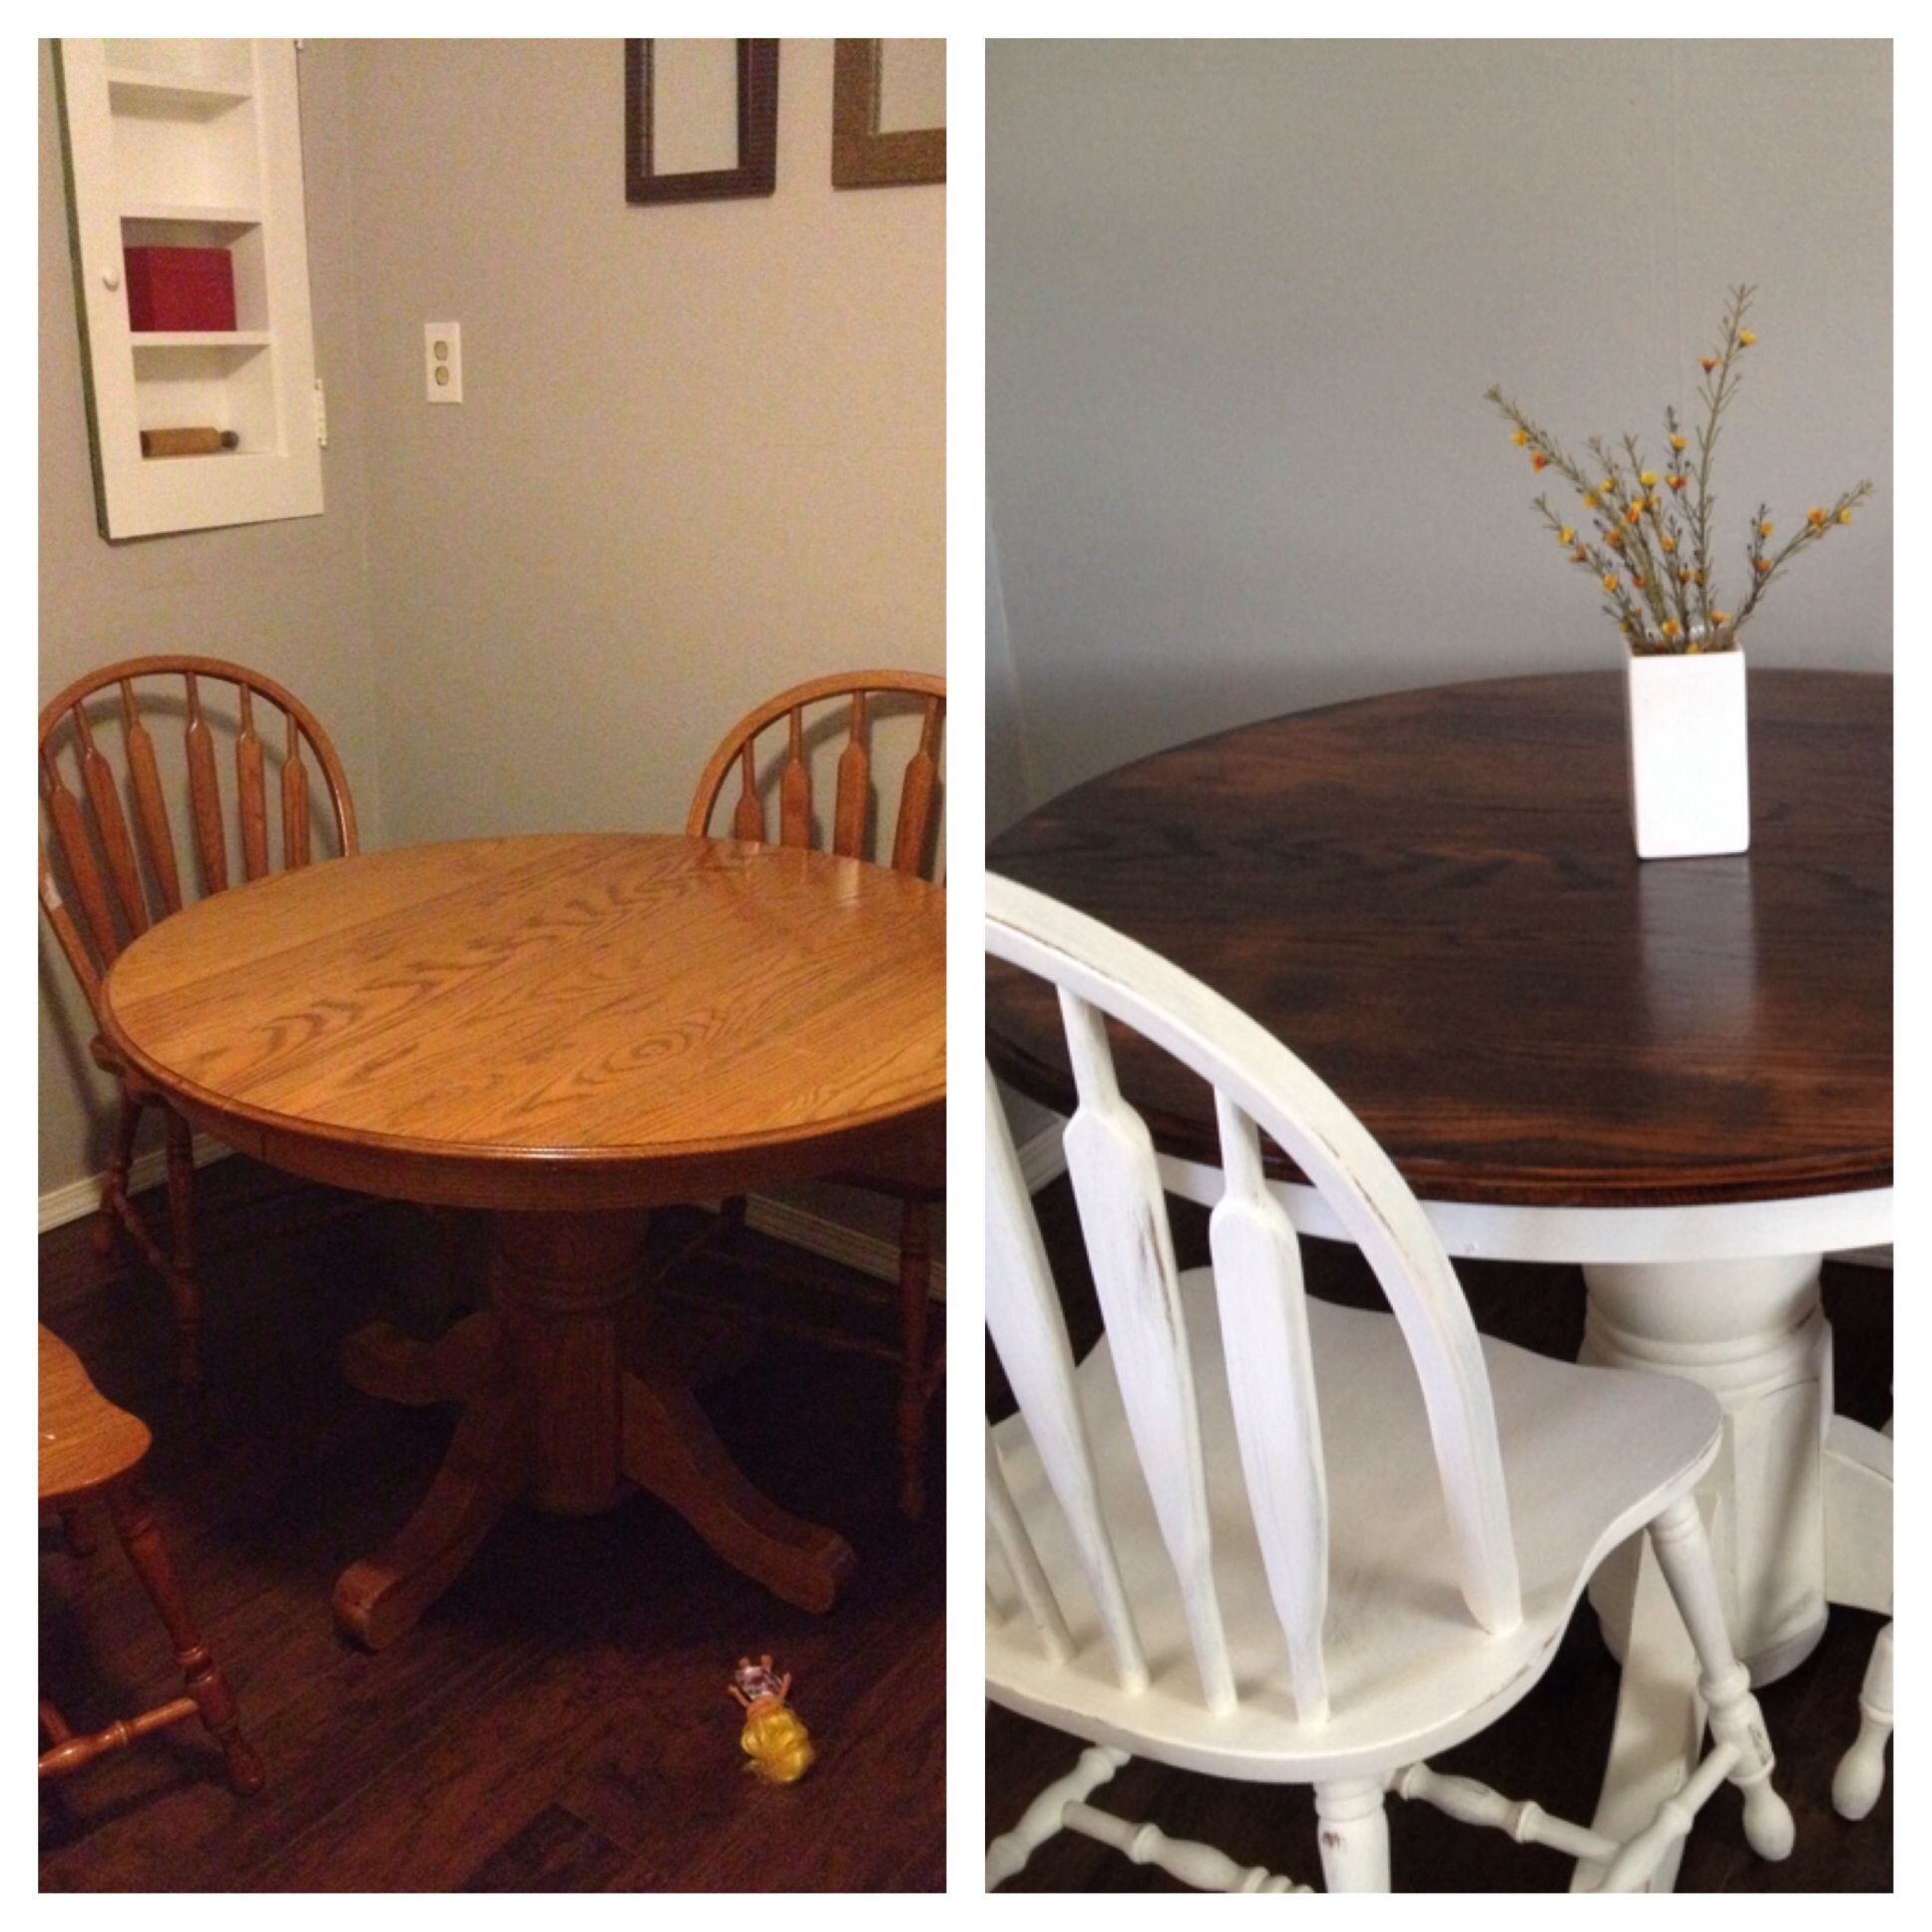 Used Kitchen Table And Chairs: My Before And After. Gave An Old Oak Table And Chairs A